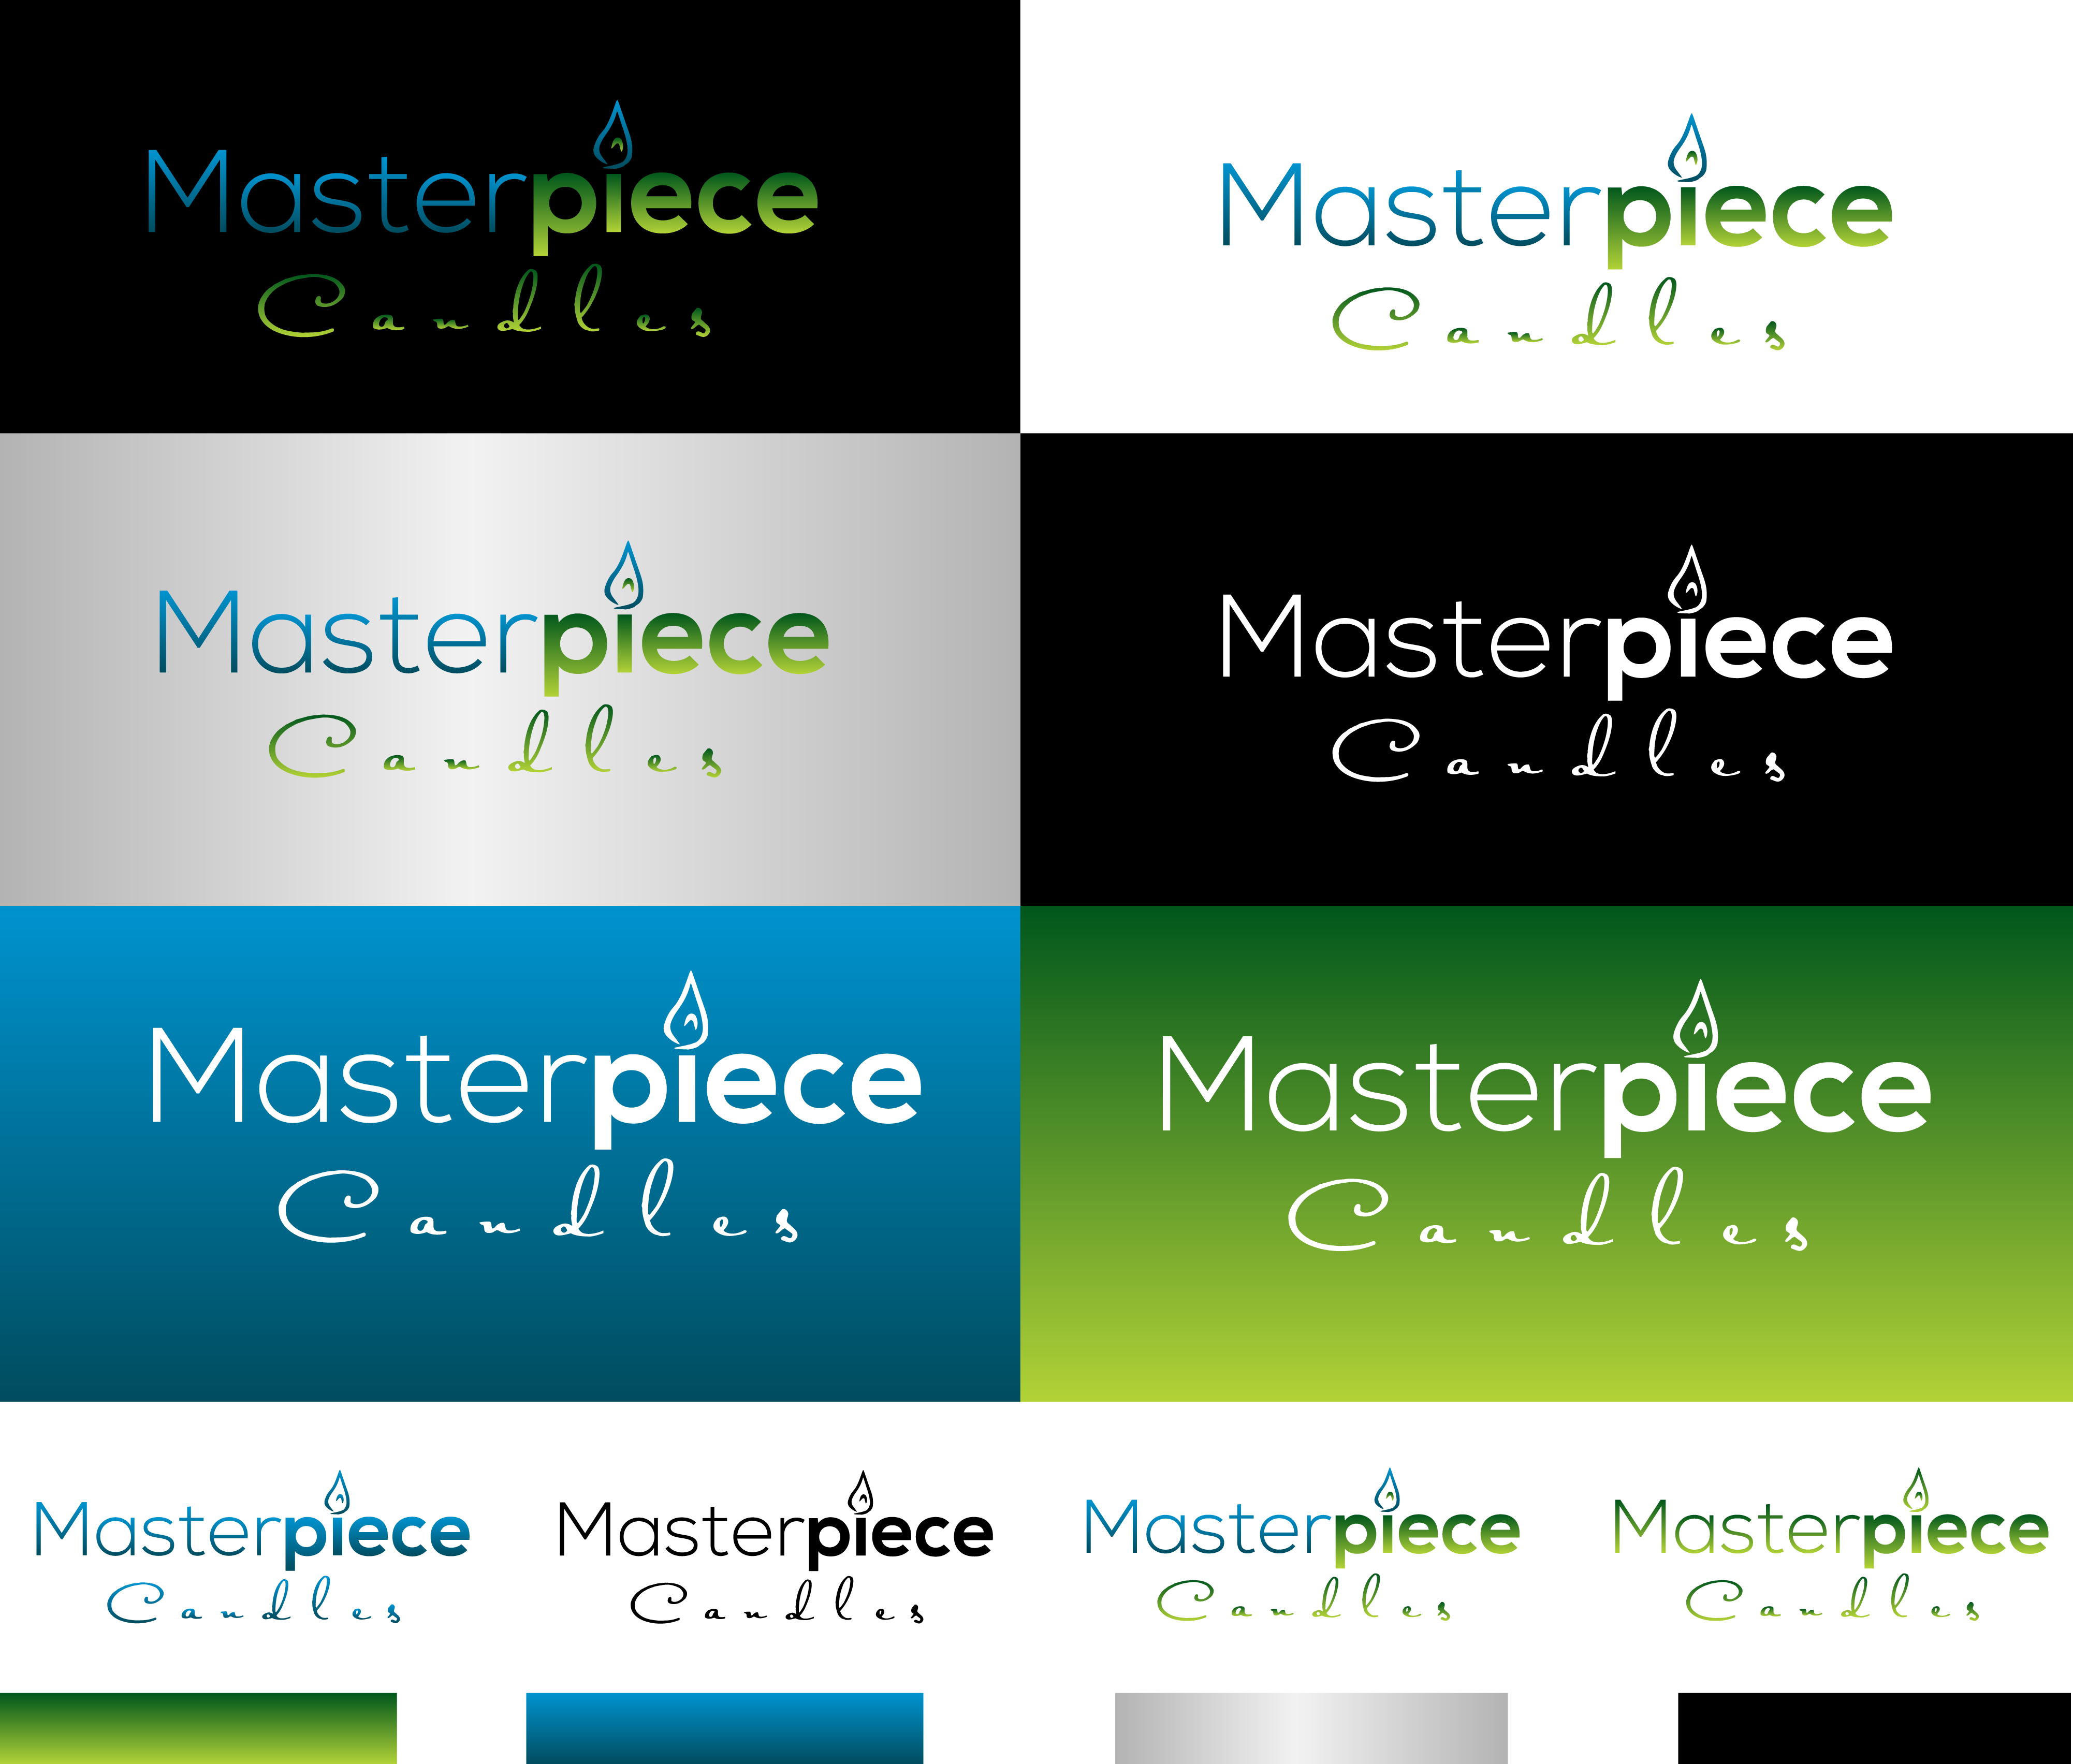 Masterpiece Candles is looking for a simple, yet elegant-looking new logo - Wedding Logo